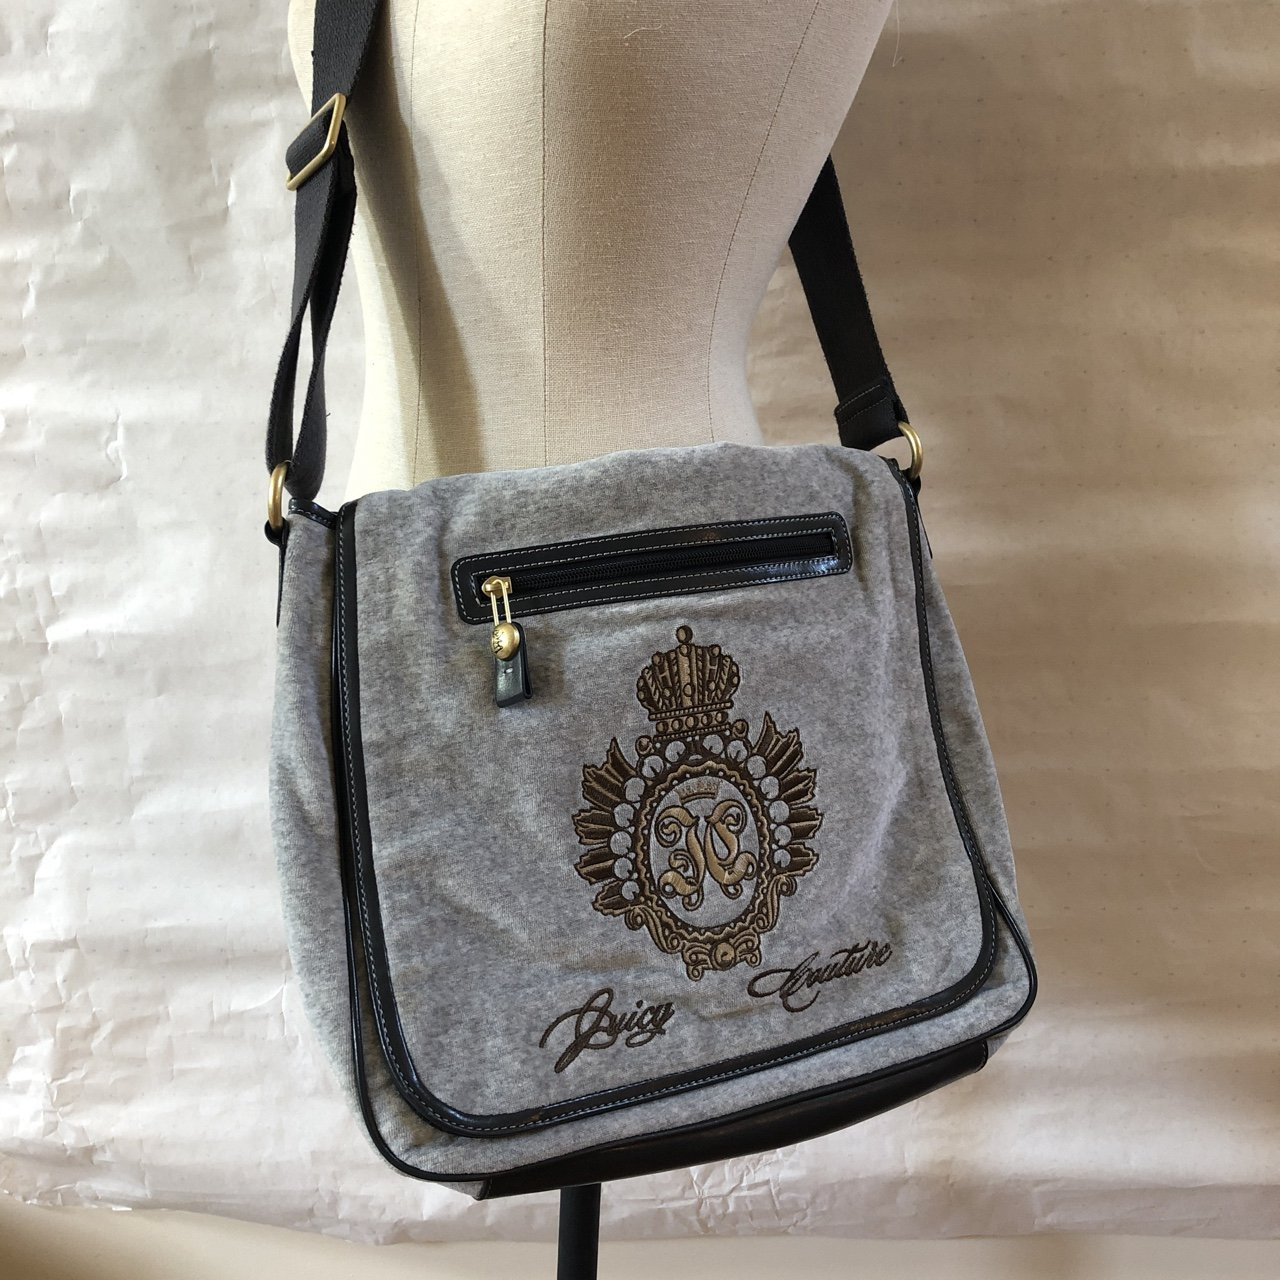 b90b9239b627 JUICY COUTURE SHOULDER BAG! NEVER WORN. But